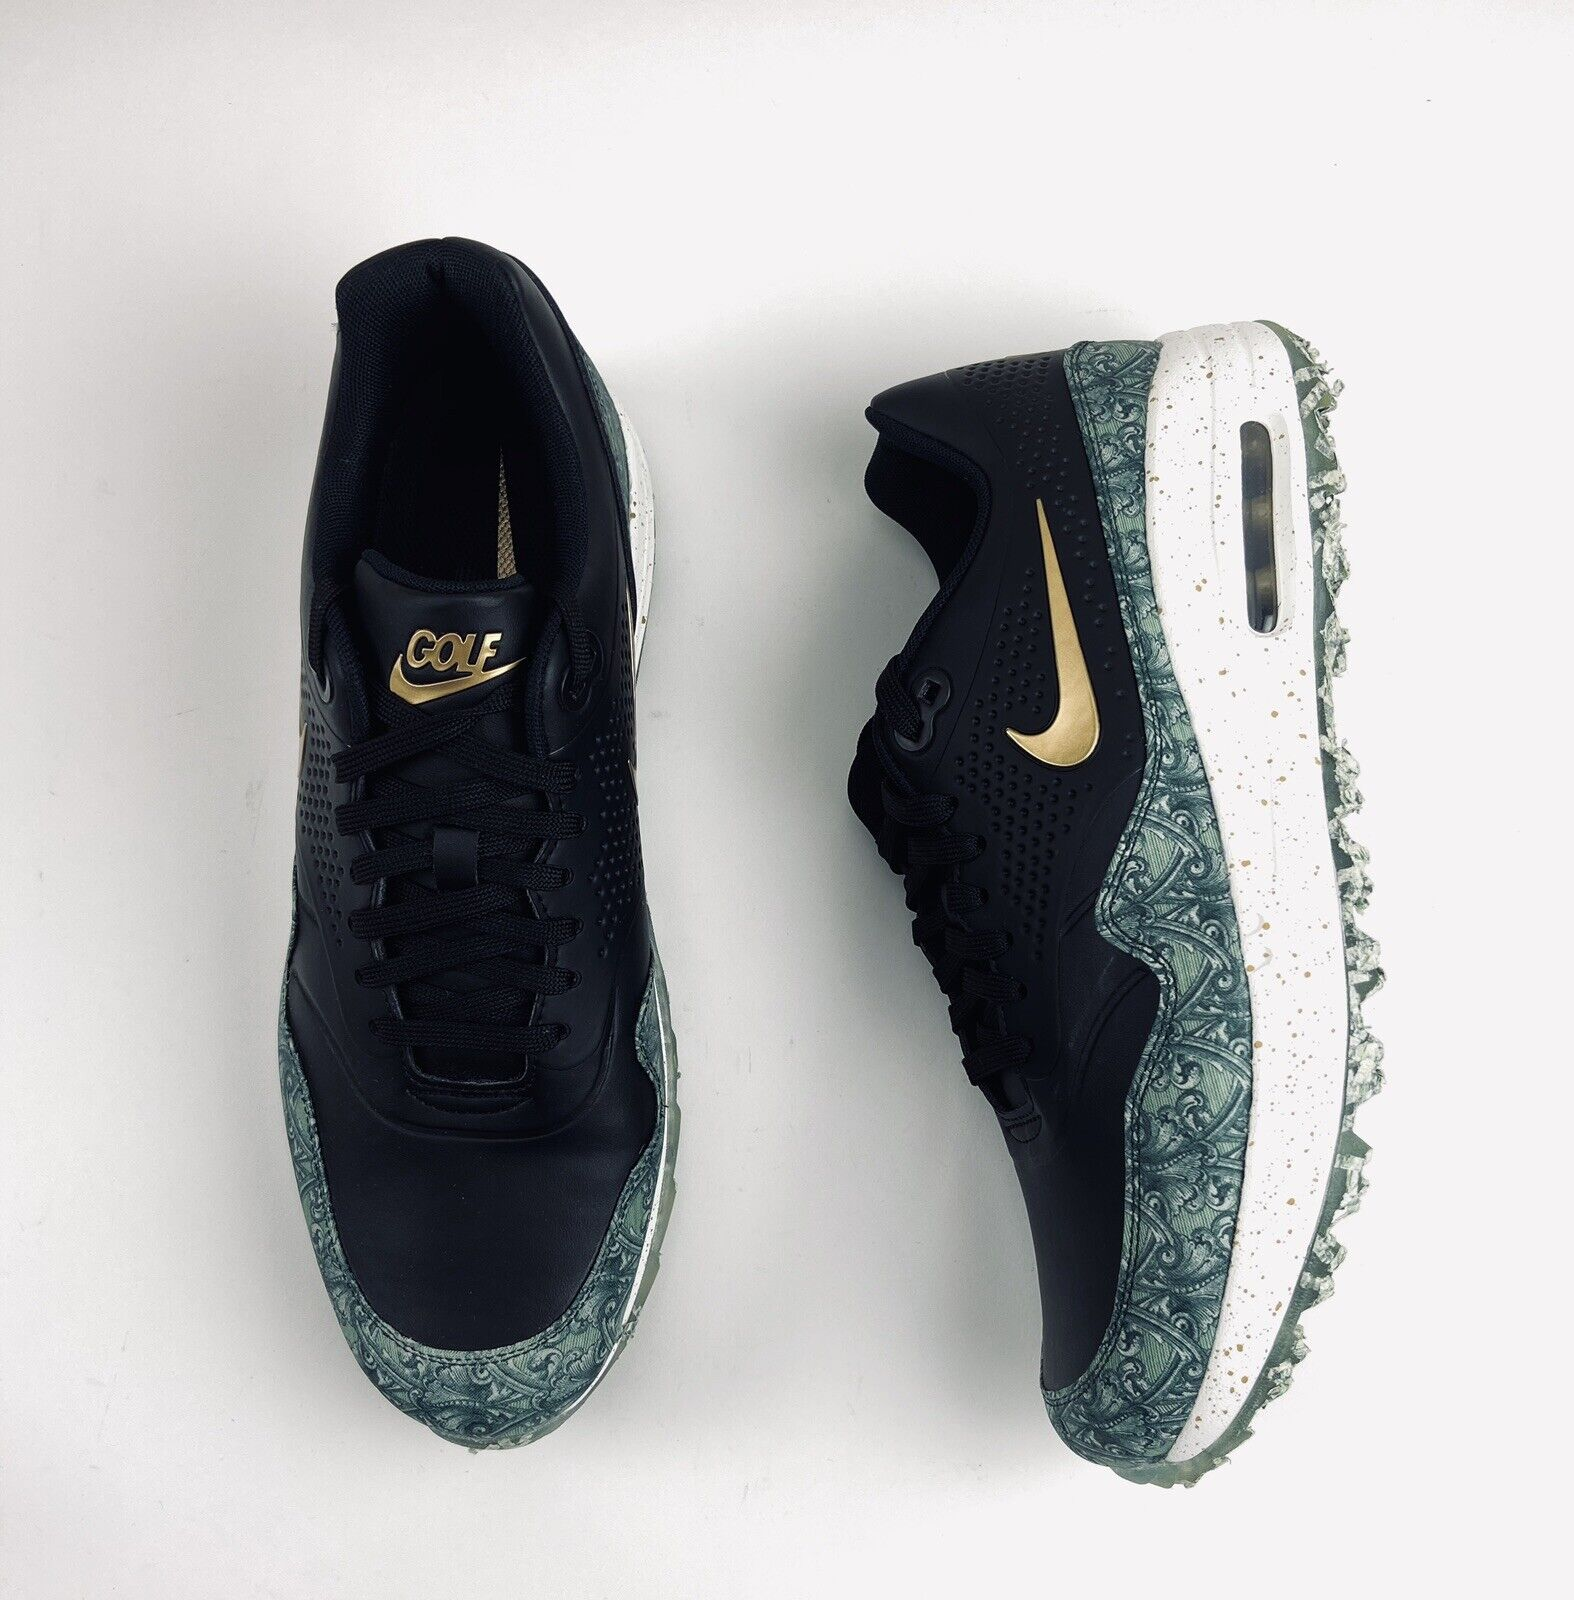 Nike Air Max 1 G Nrg Golf Shoes Payday Paid In Full Money Bq4804 001 Size 10 For Sale Online